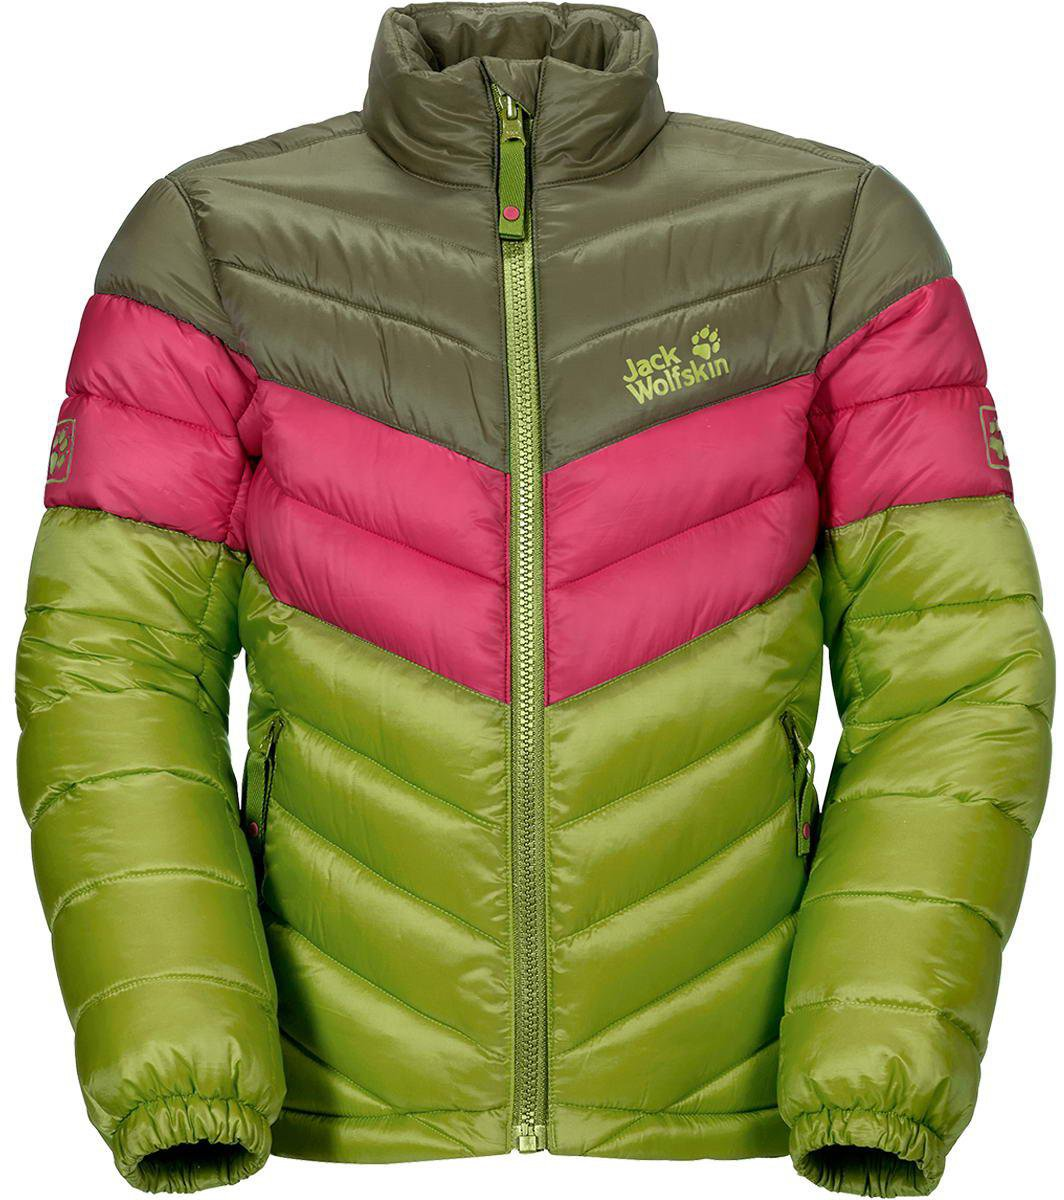 reputable site 9c28c a7265 Jack Wolfskin Winterjacke Kinder